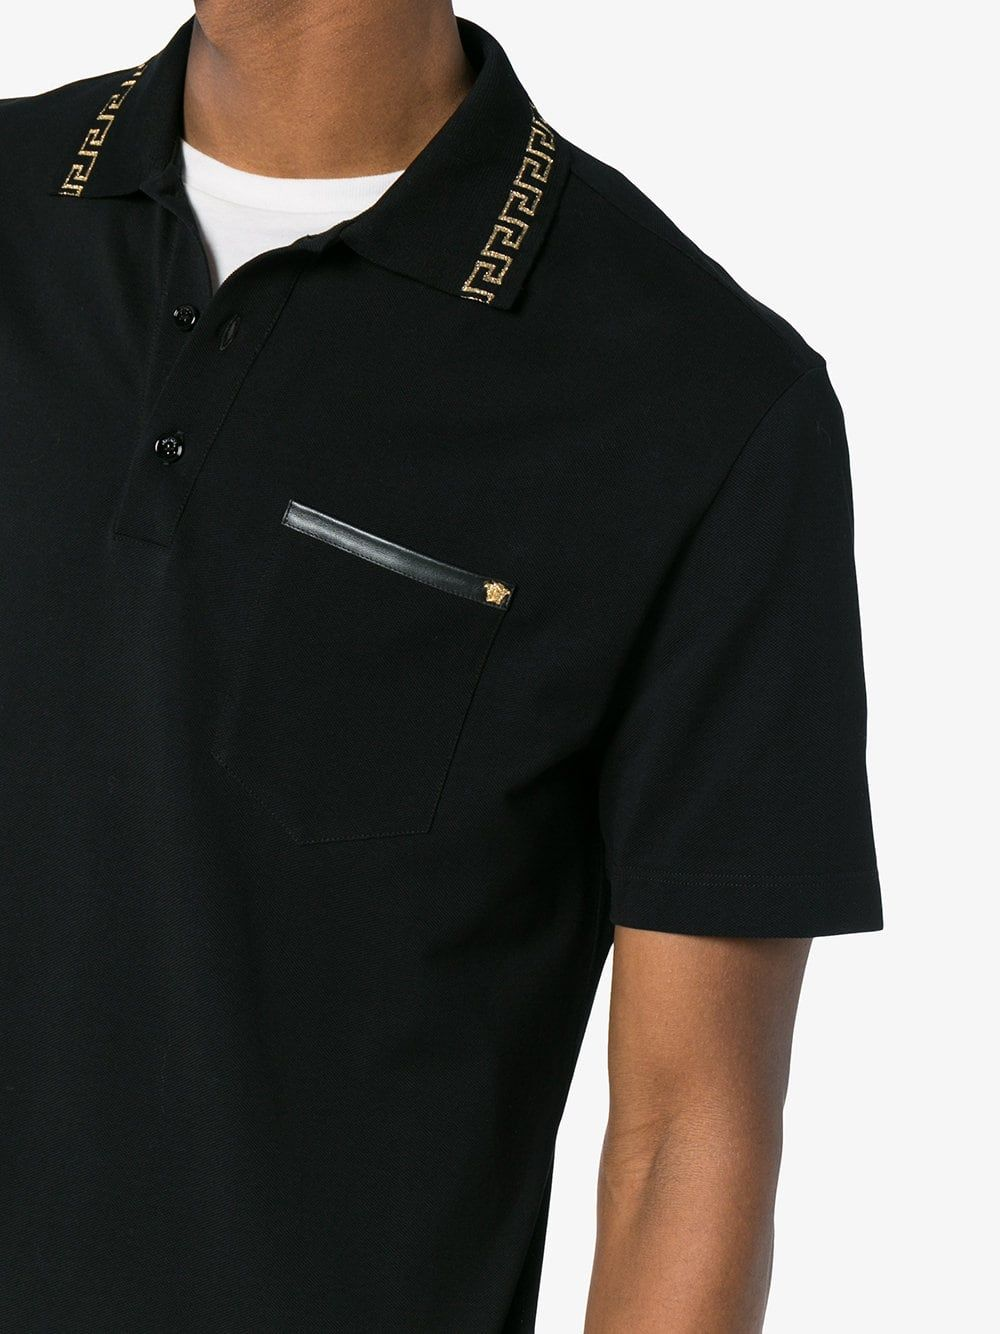 e60f37c70 Versace Jeans Tipped Polo T Shirt - raveitsafe